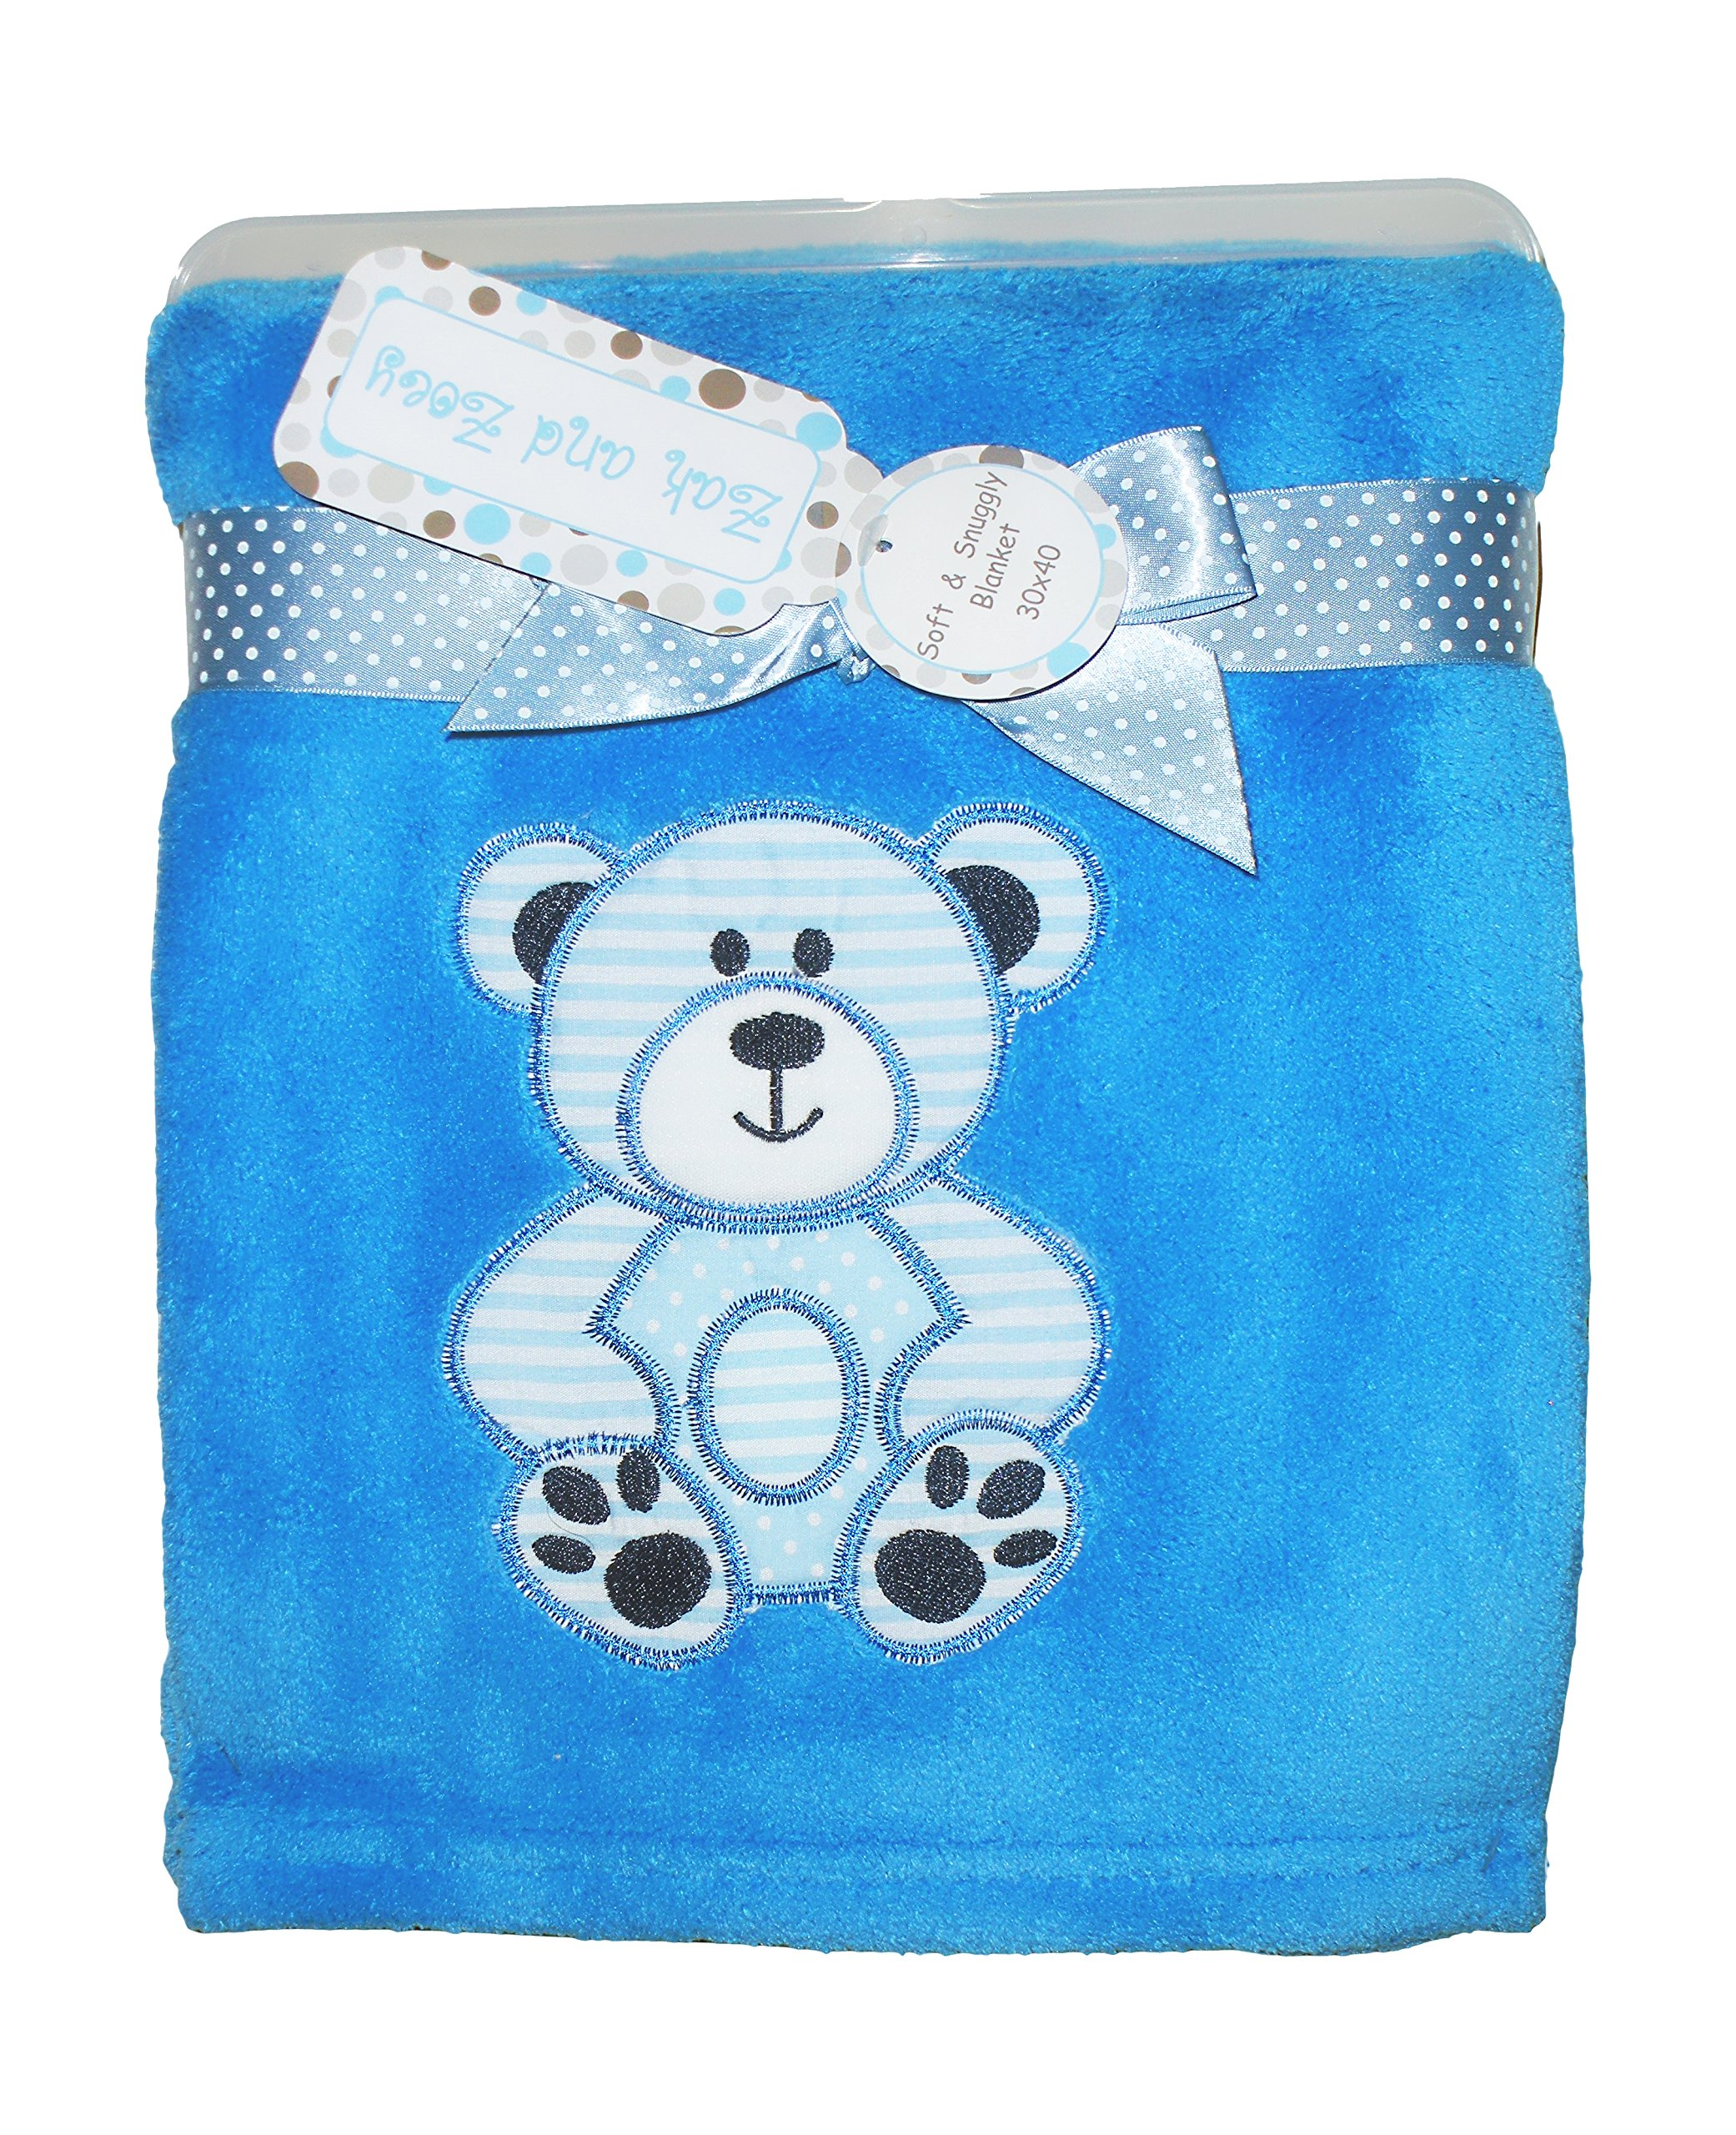 Zak & Zoey Ultra Soft Embossed Plush with Applique Baby Blanket (Teddy Bear Blue)